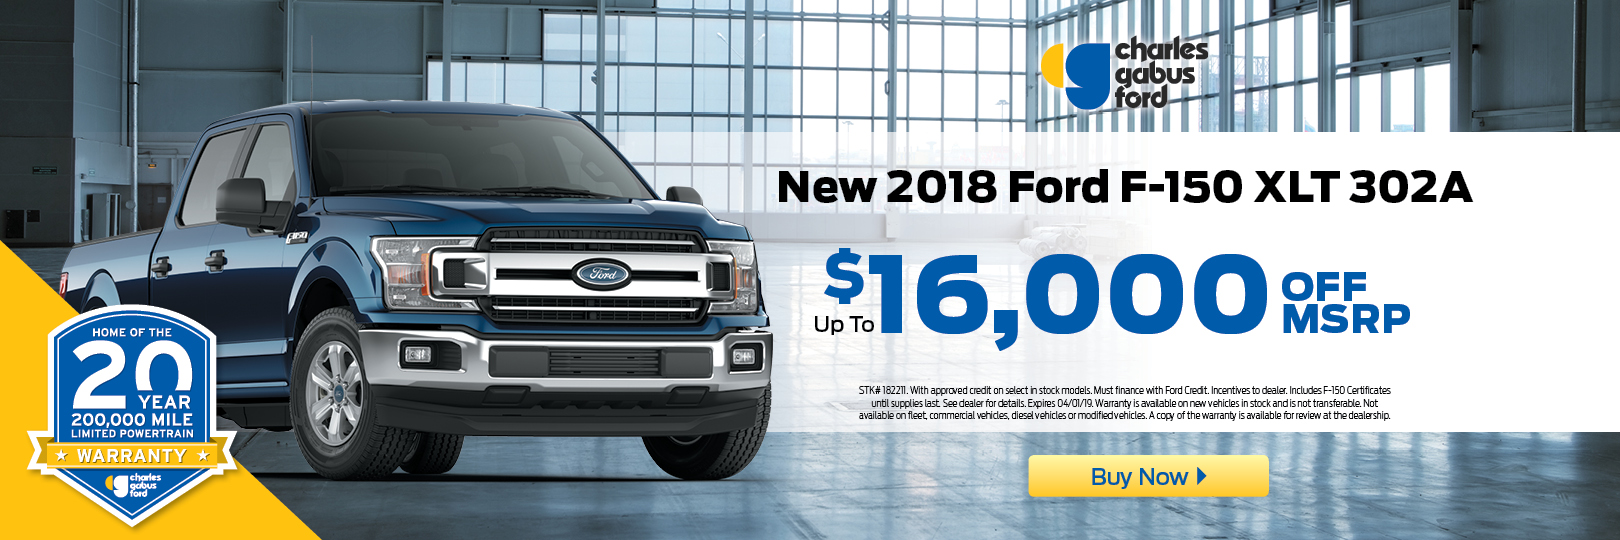 Charles Gabus Ford >> Charles Gabus Ford Upcoming Auto Car Release Date